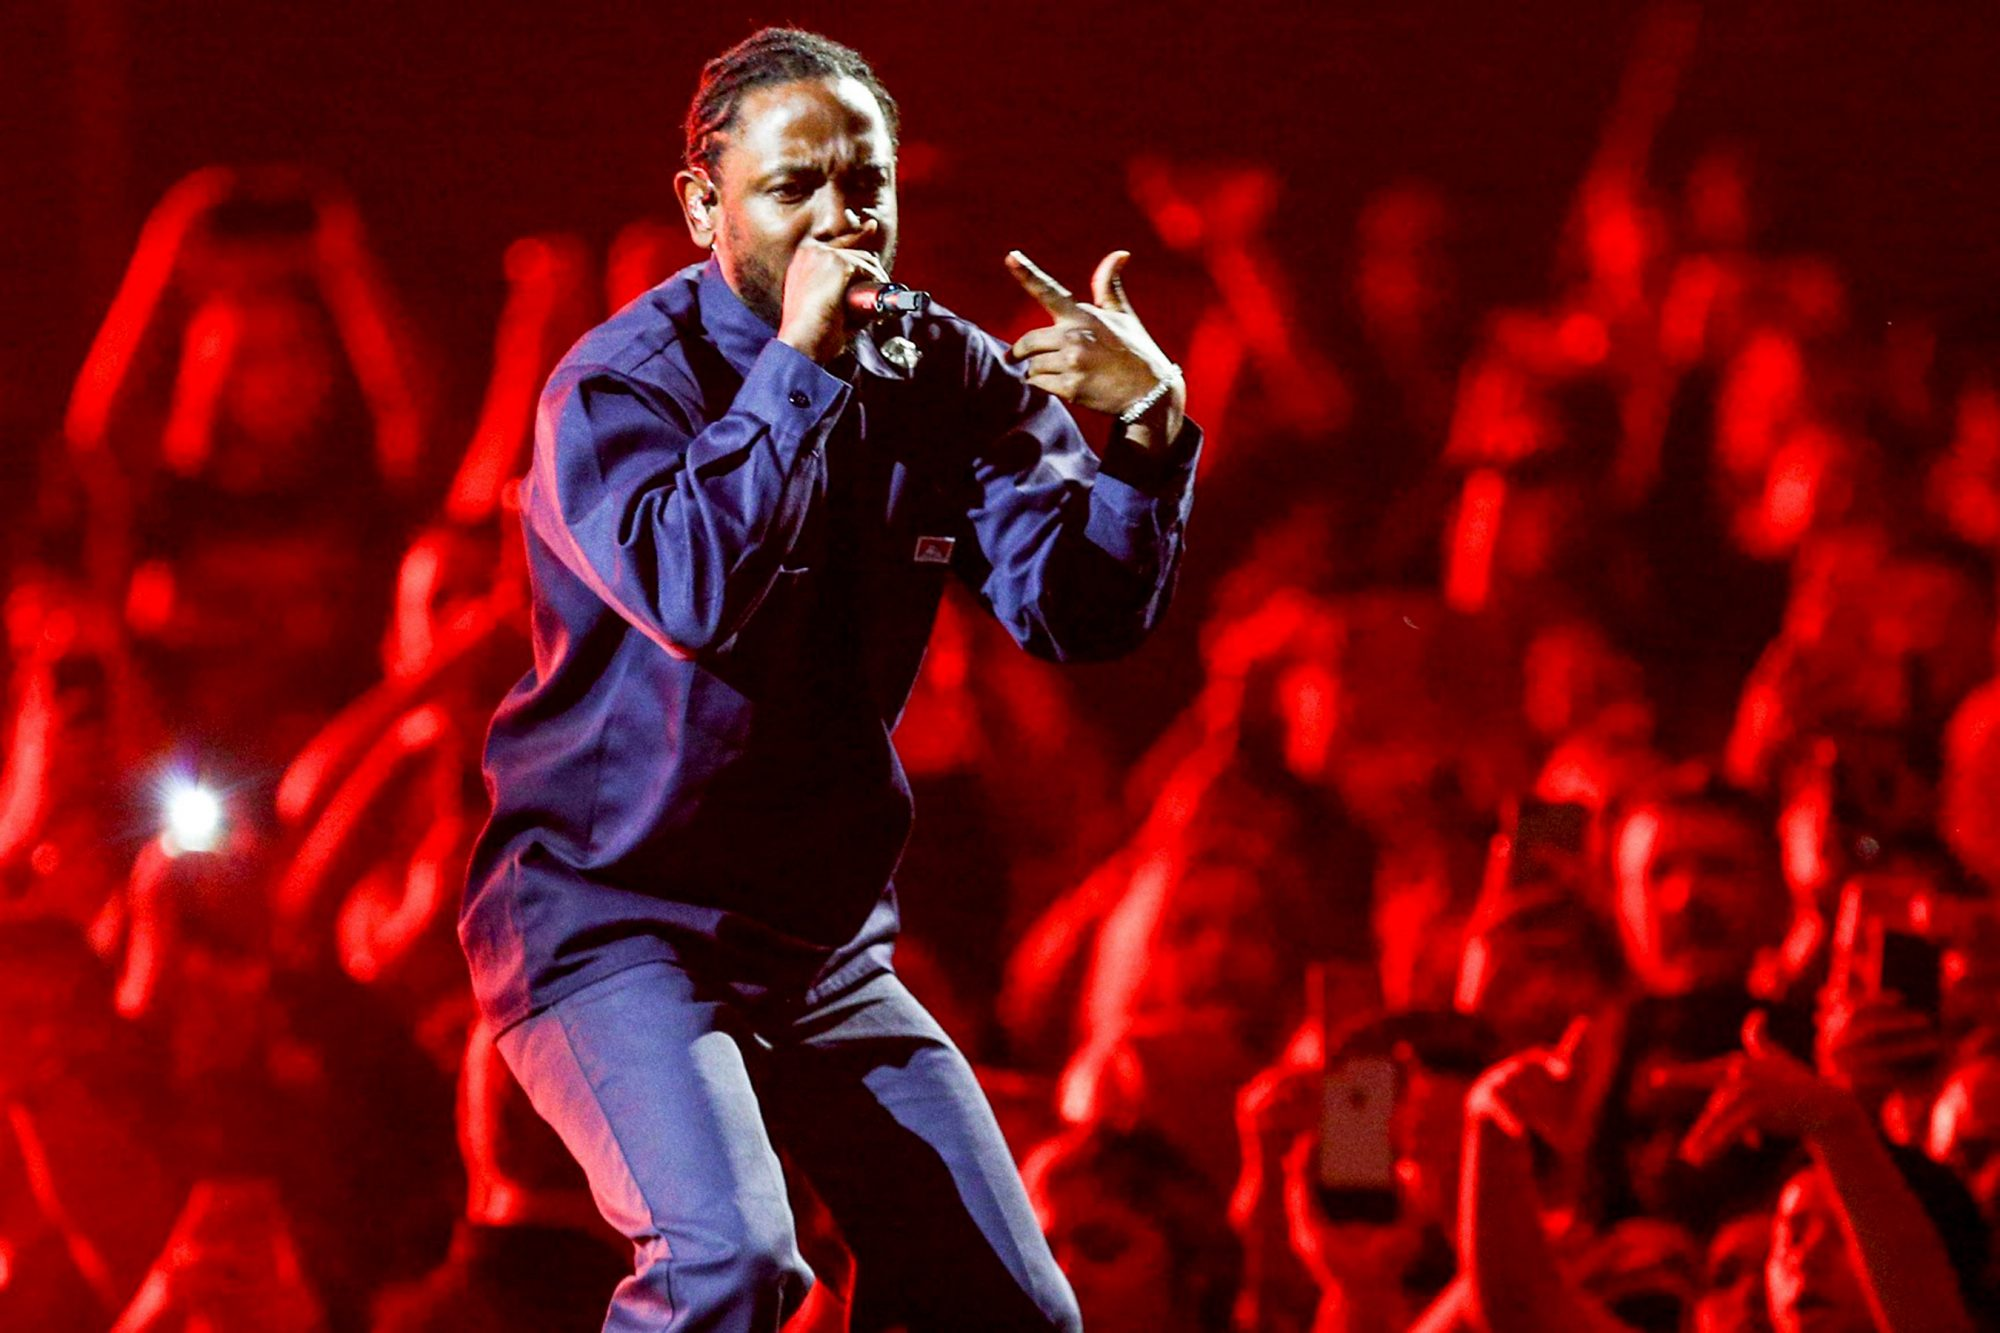 """Kendrick Lamar Joins The Weeknd During The """"Legends of The Fall Tour"""" At The Forum"""